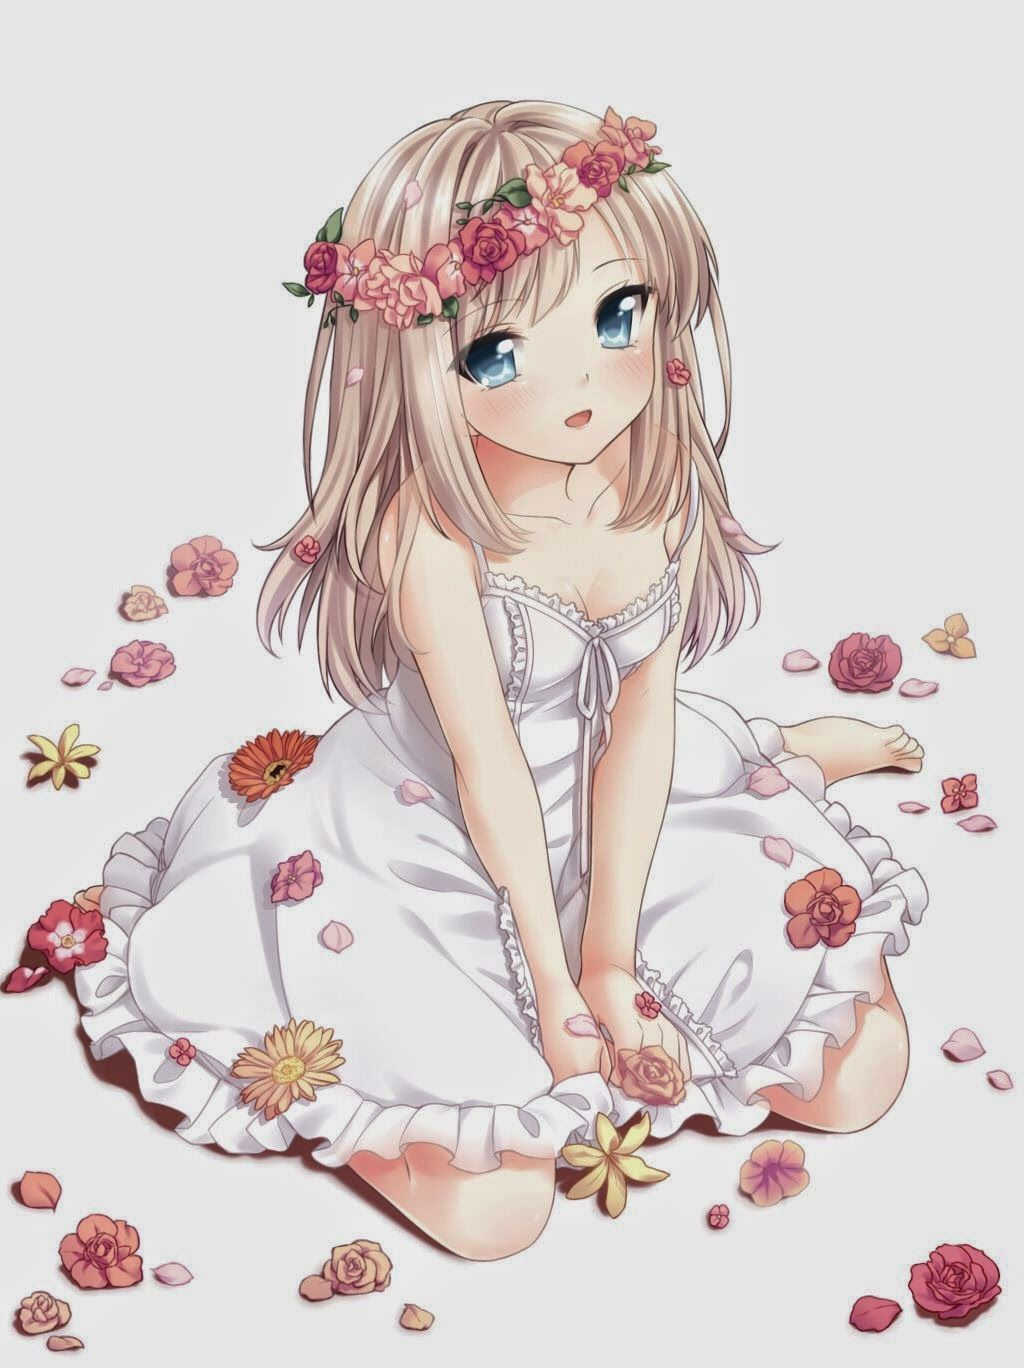 Anime Flower Girl